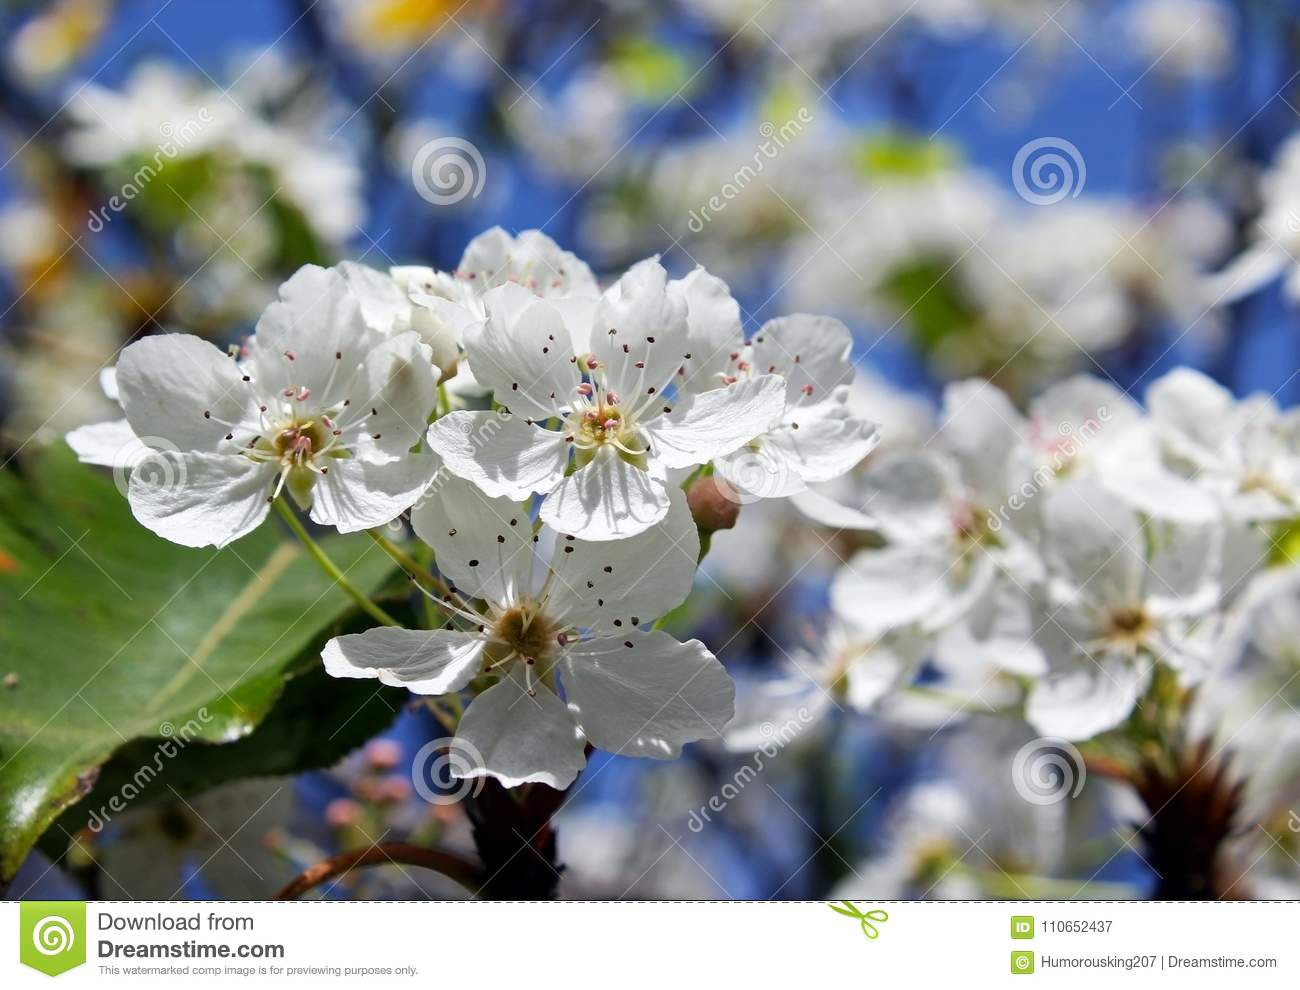 Clusters of evergreen pear white flowers stock image image of download clusters of evergreen pear white flowers stock image image of evergreen bloom mightylinksfo